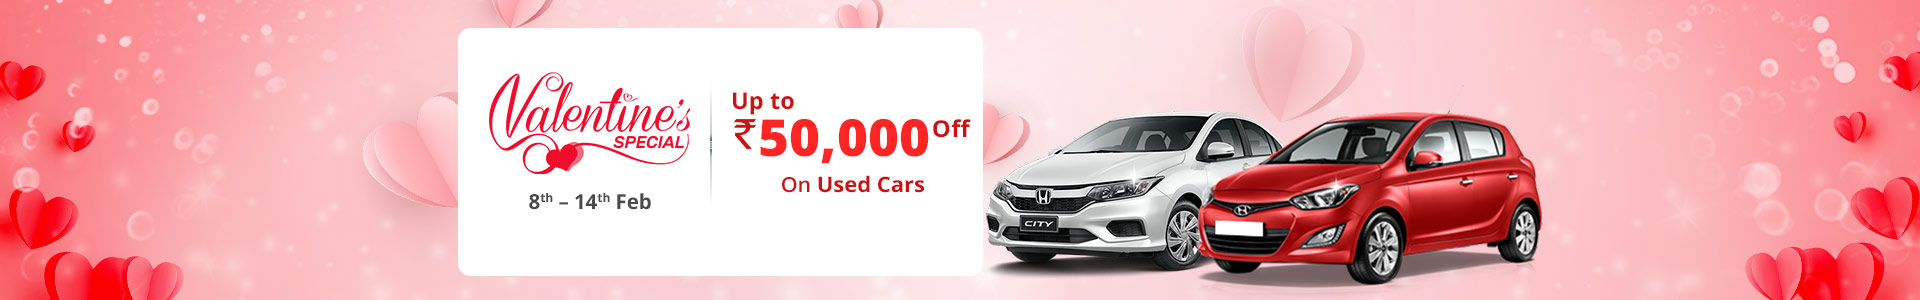 Used Cars Offer on Valentines Day India